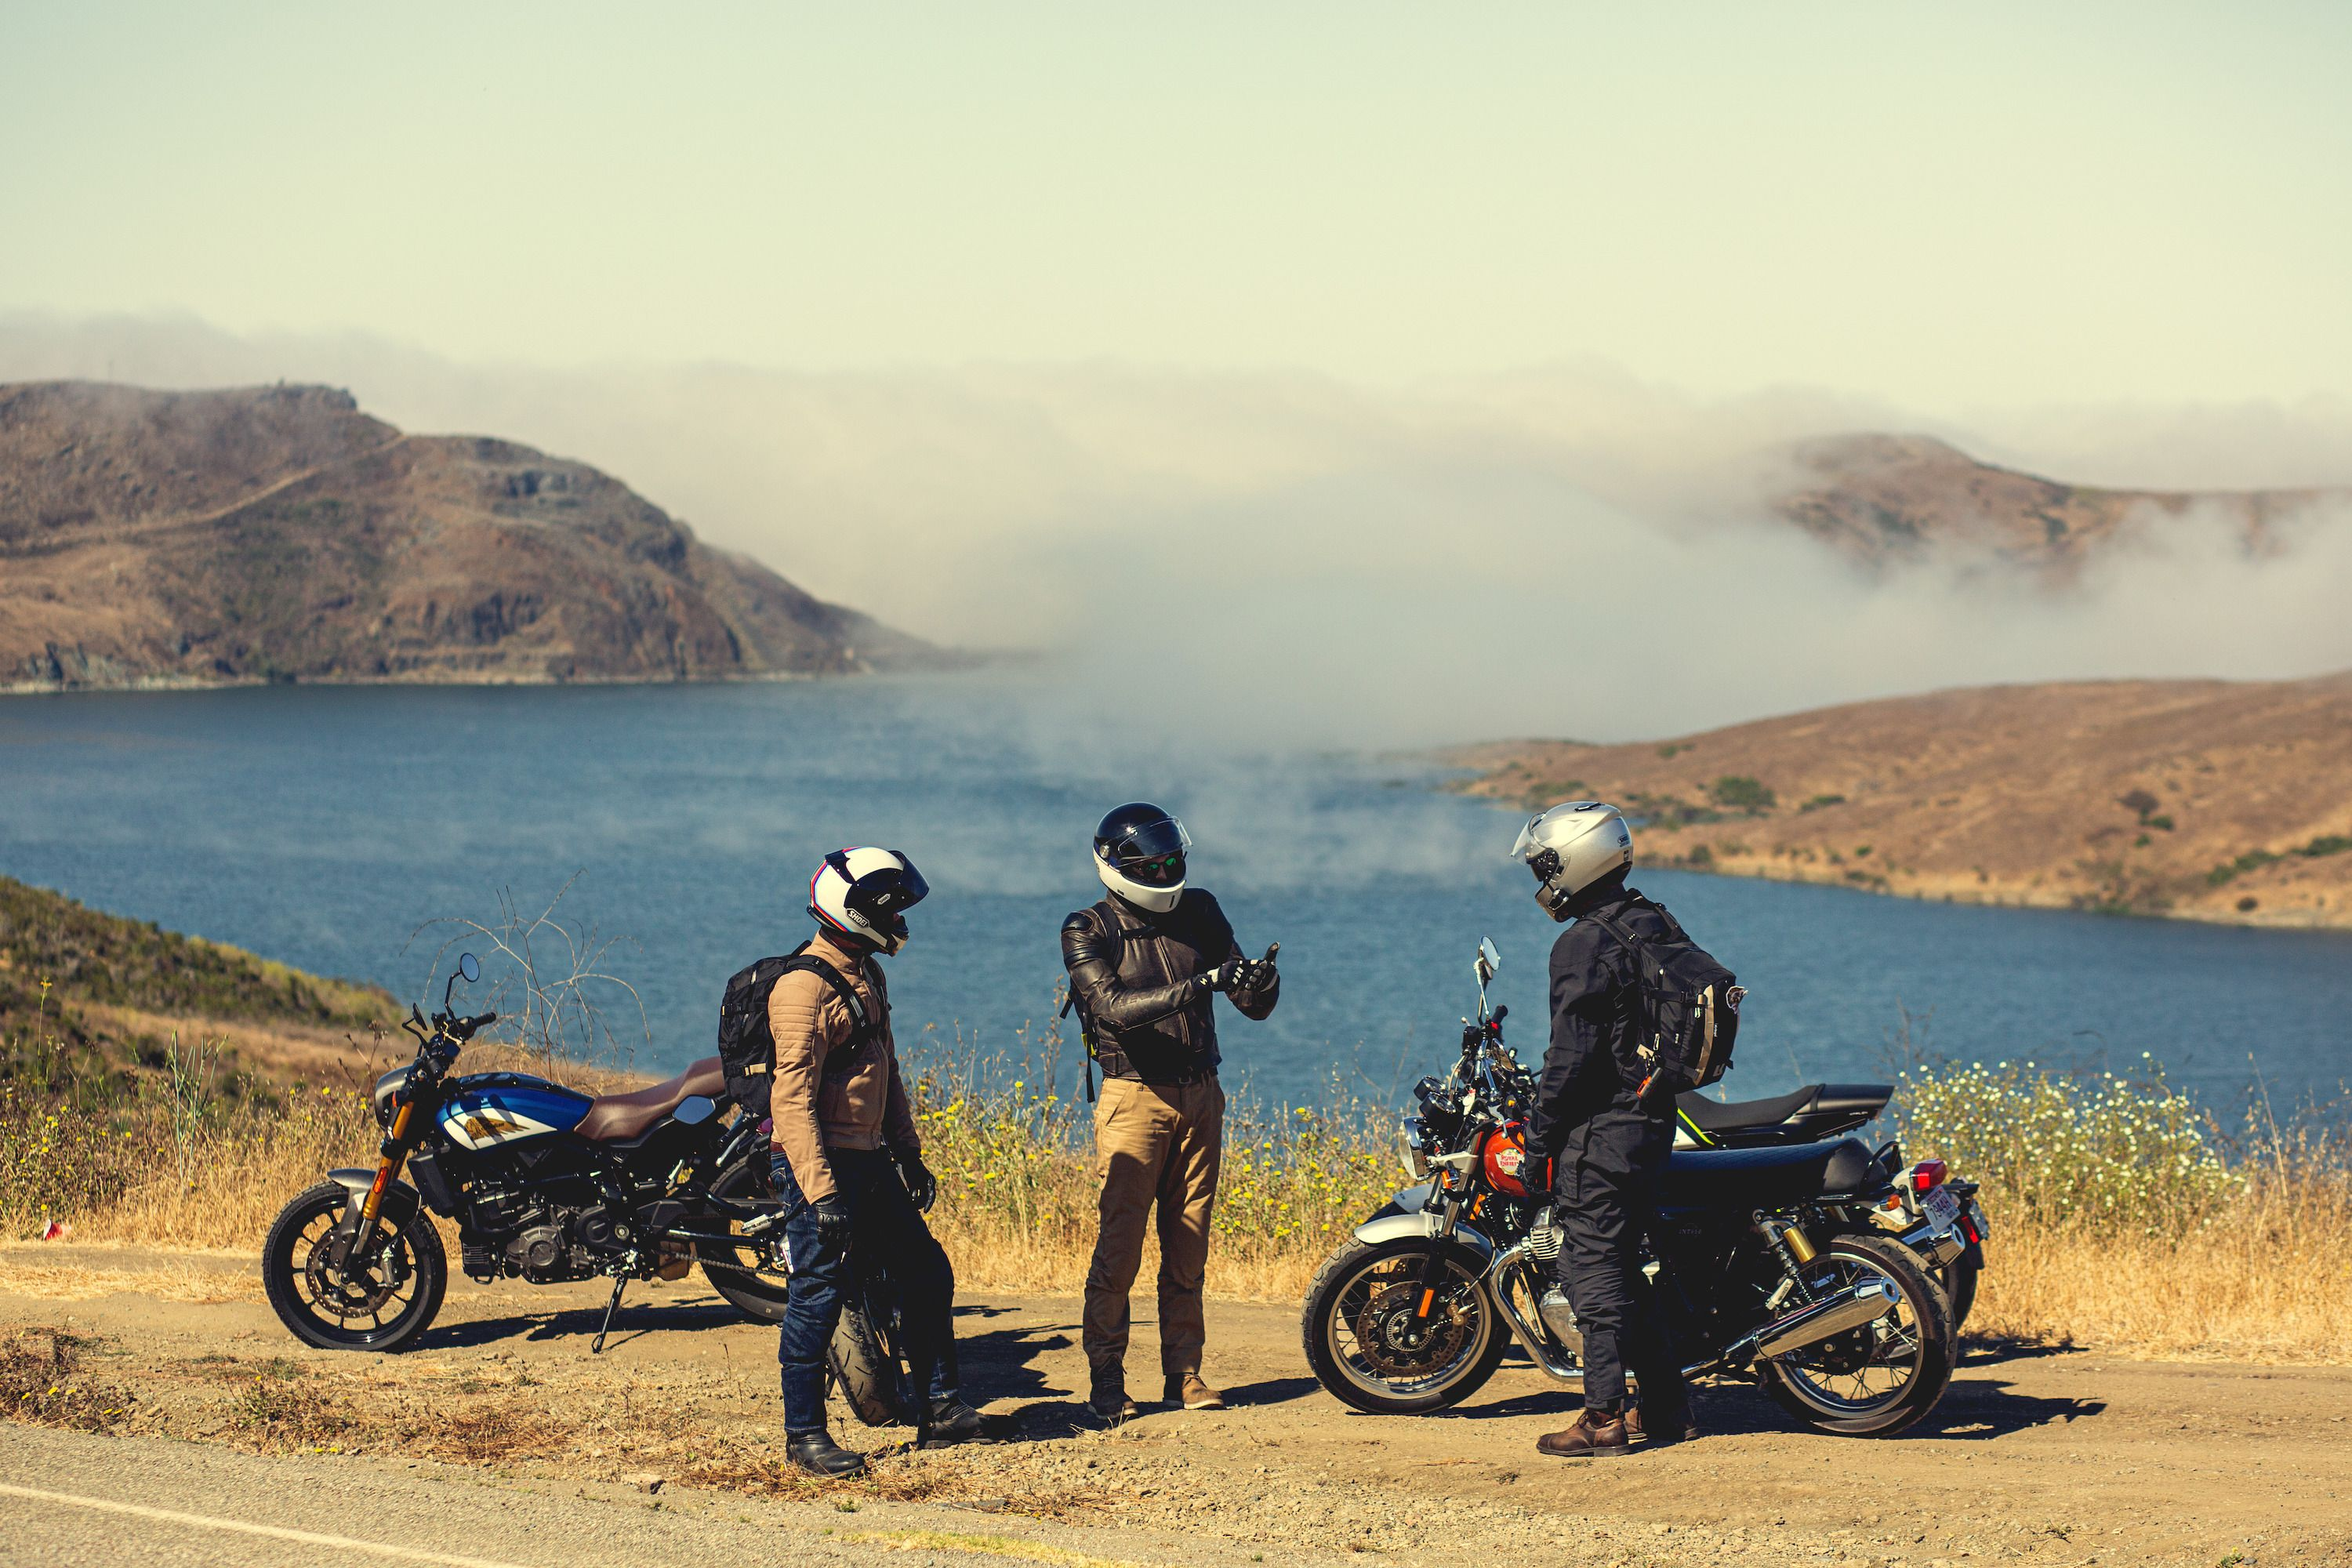 I Went on My First Big Motorcycle Ride and Immediately Crashed